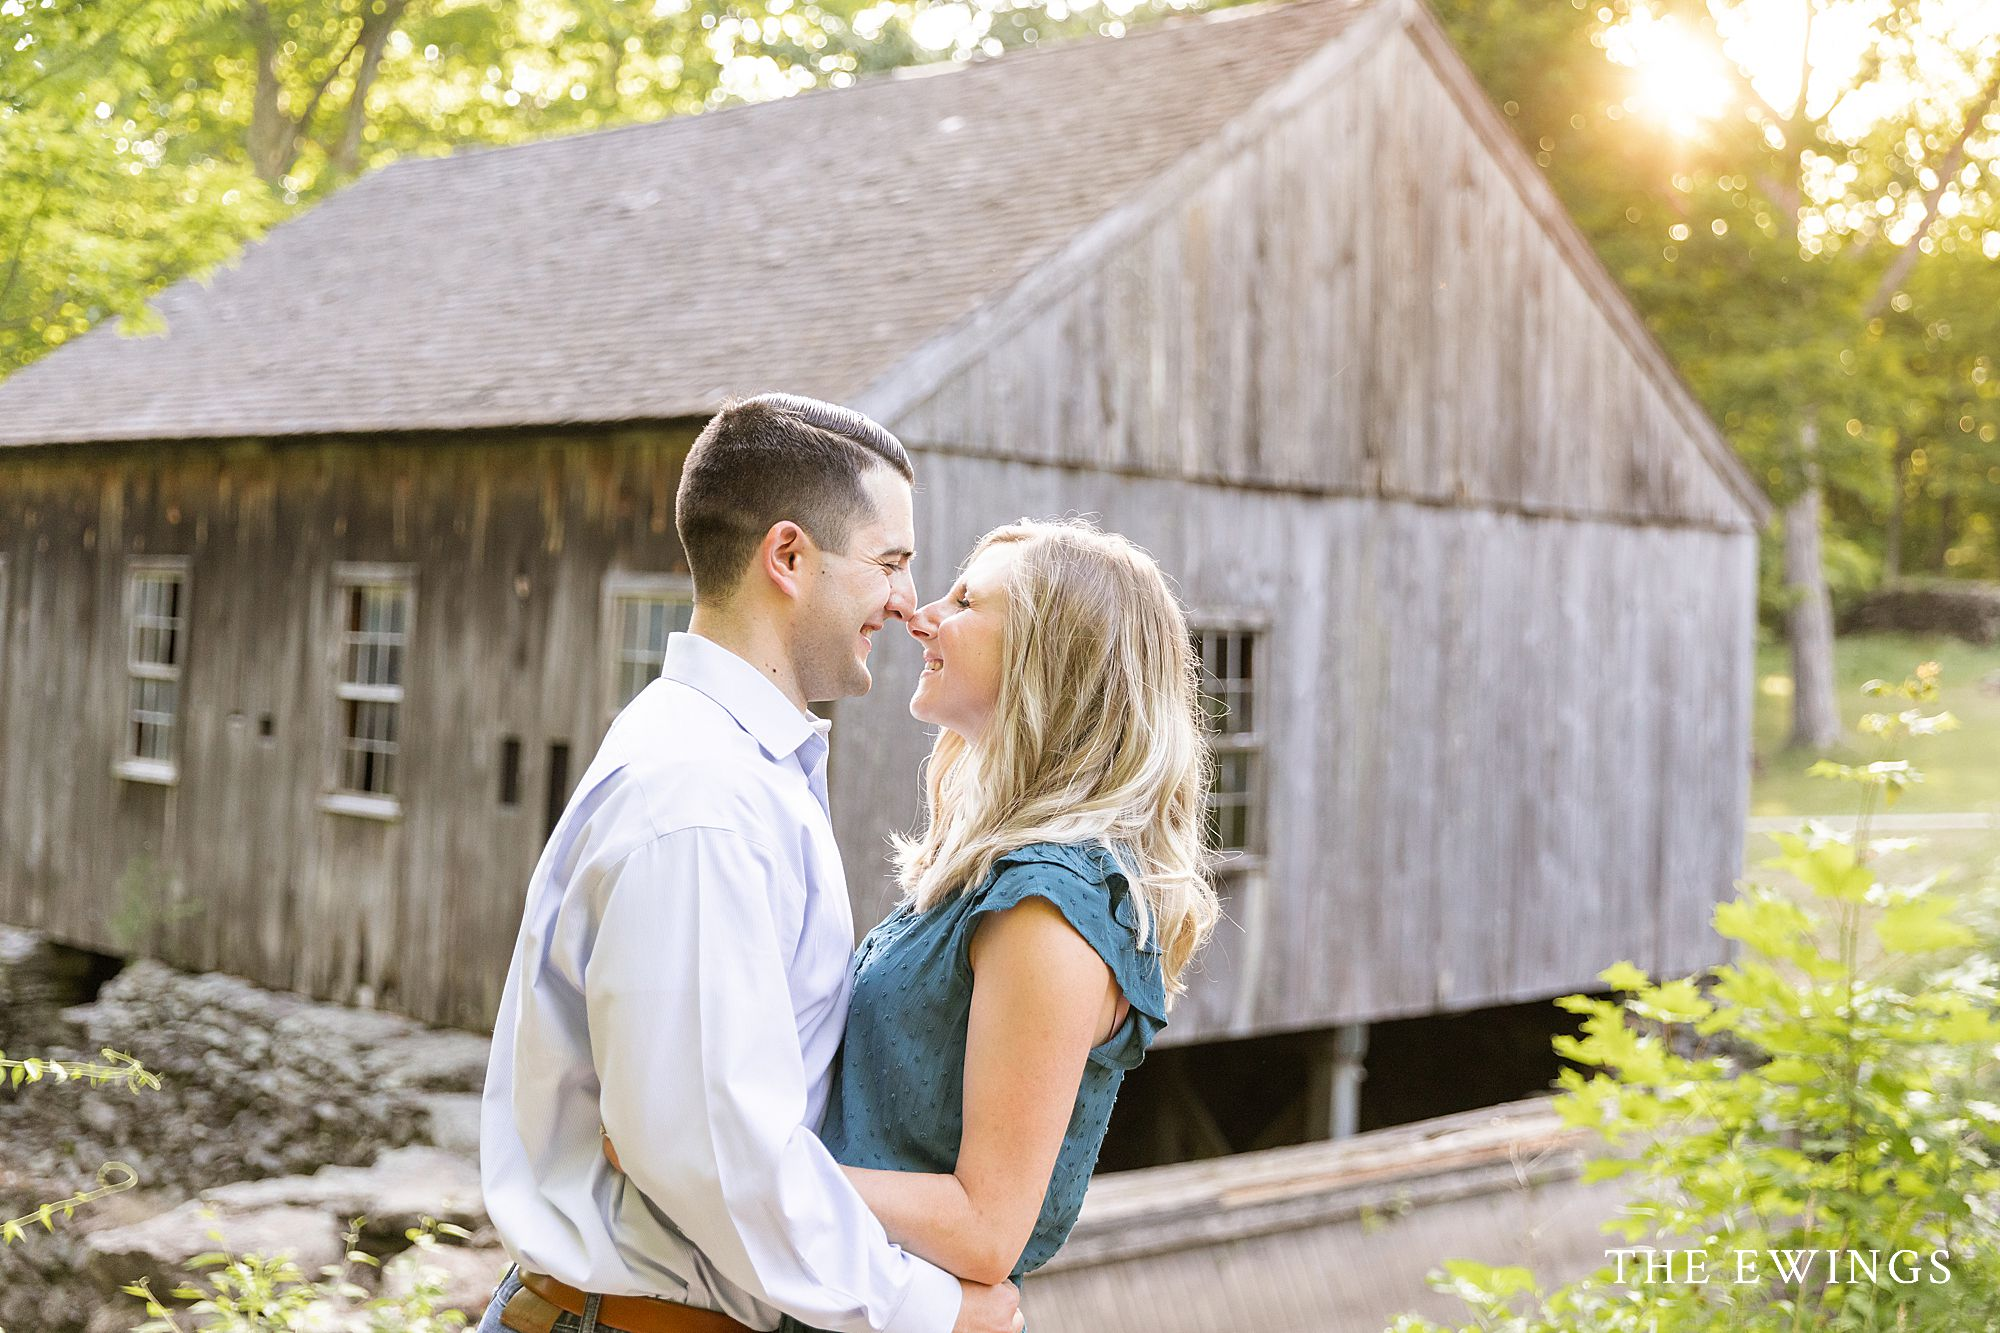 Moore State Park is a gorgeous location for an engagement session in the Central Mass Worcester area.